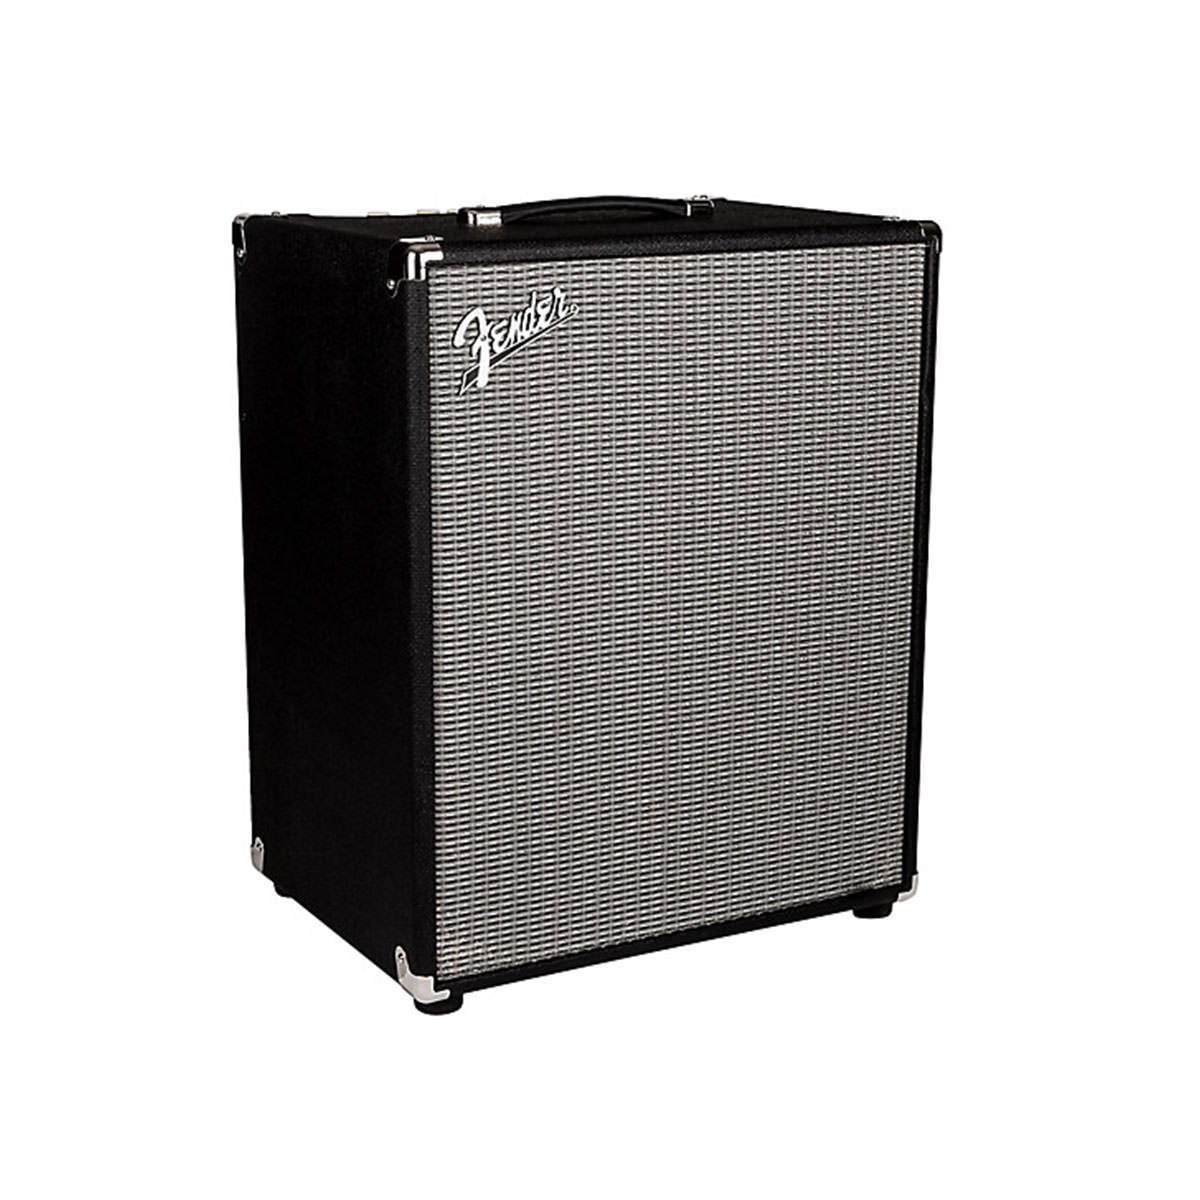 Fender Amp Rumble 500w Bass Amp